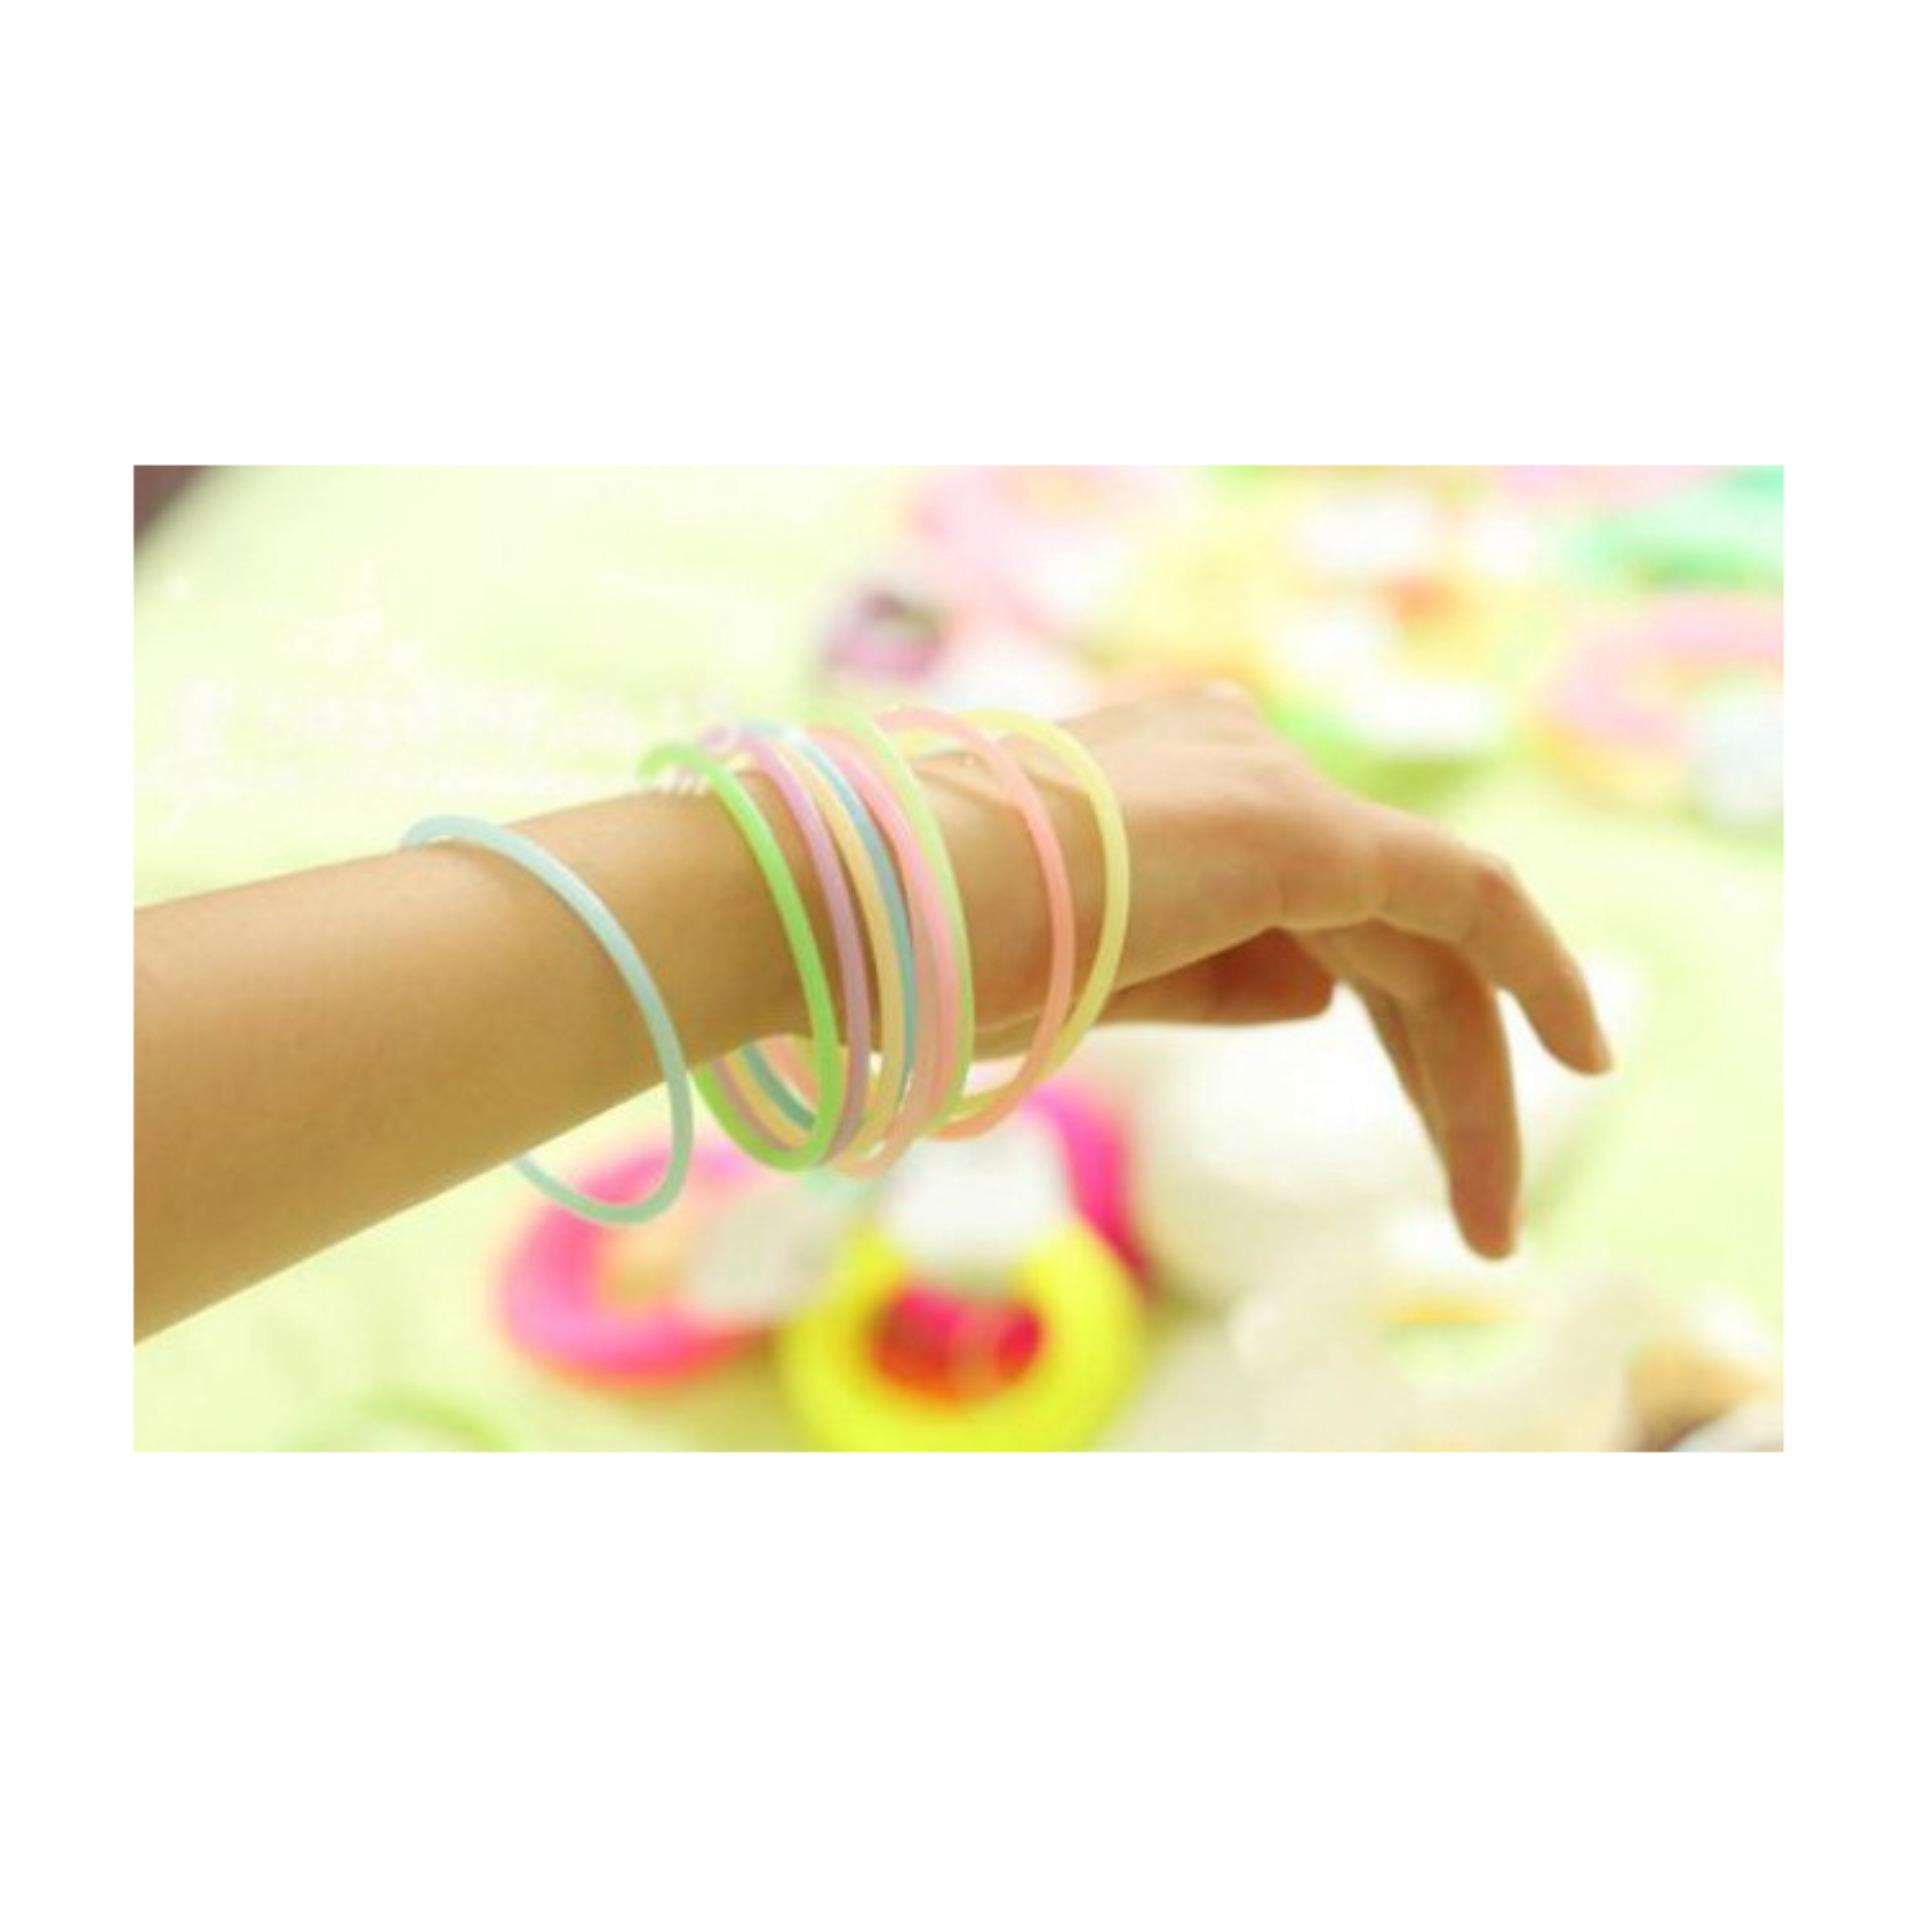 Anneui - Silicone Band - GLOW IN THE DARK .